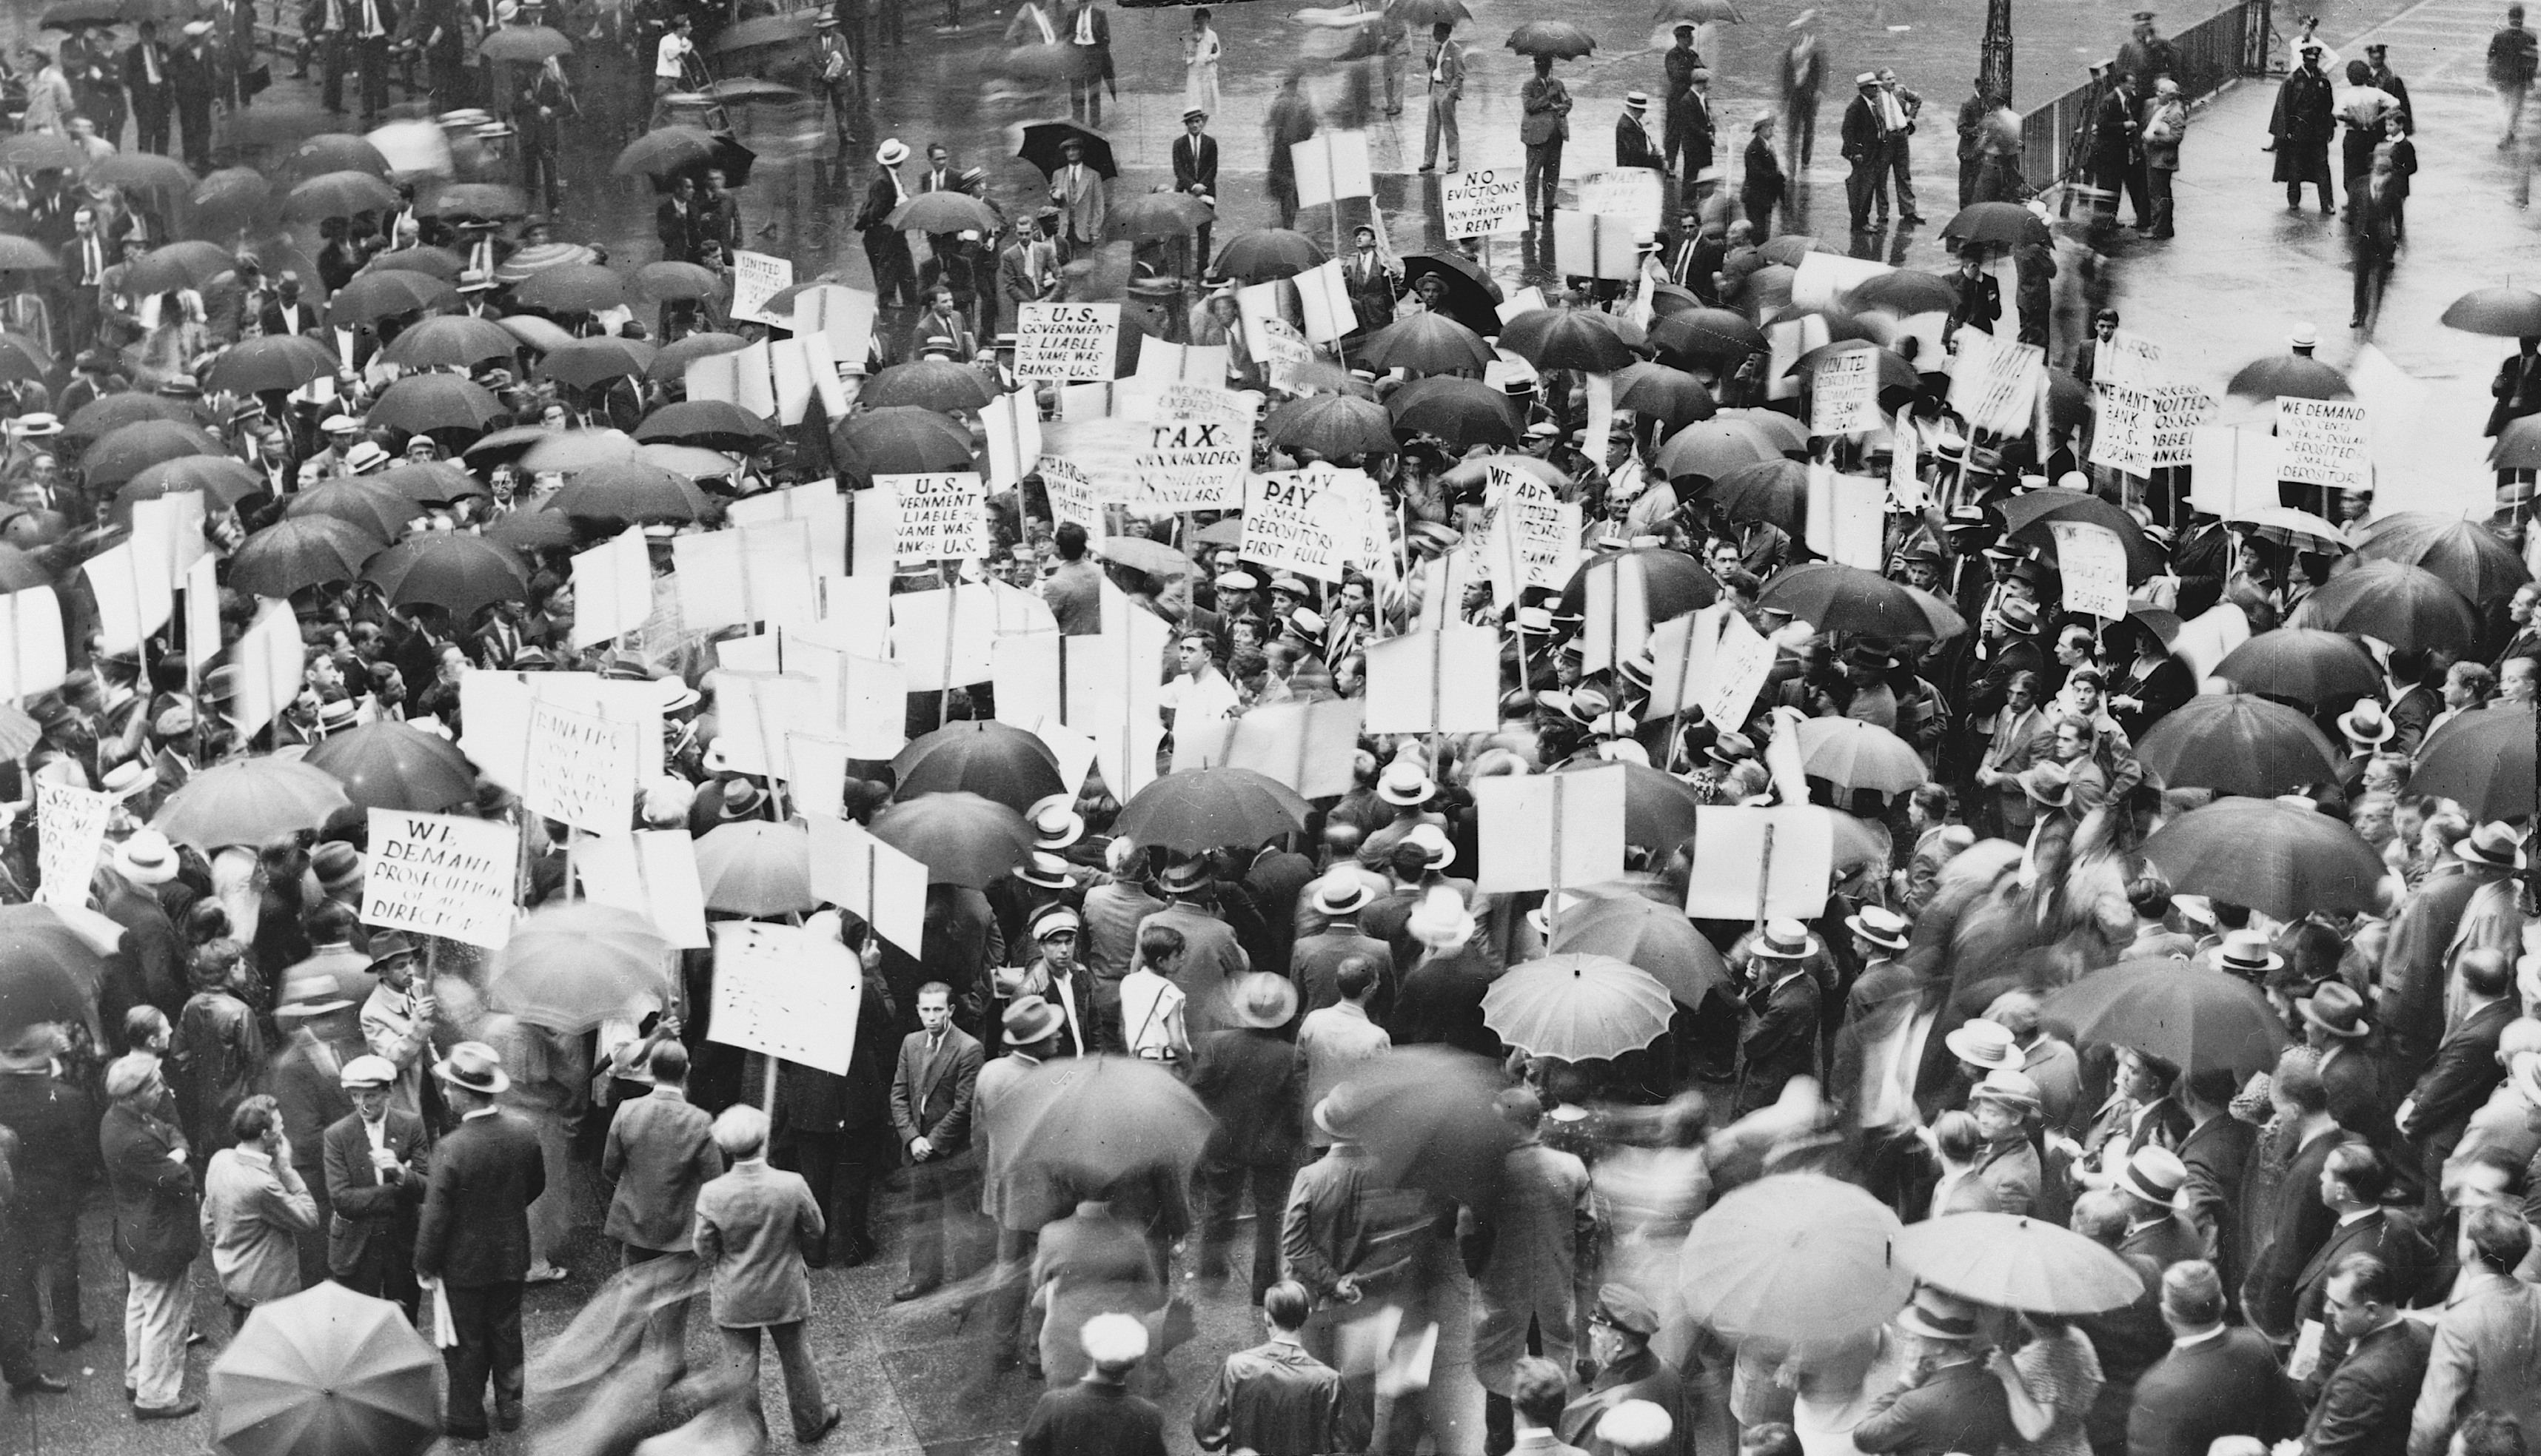 1931 - Crowd of depositors gather in the rain outside Bank of United States after its failure.